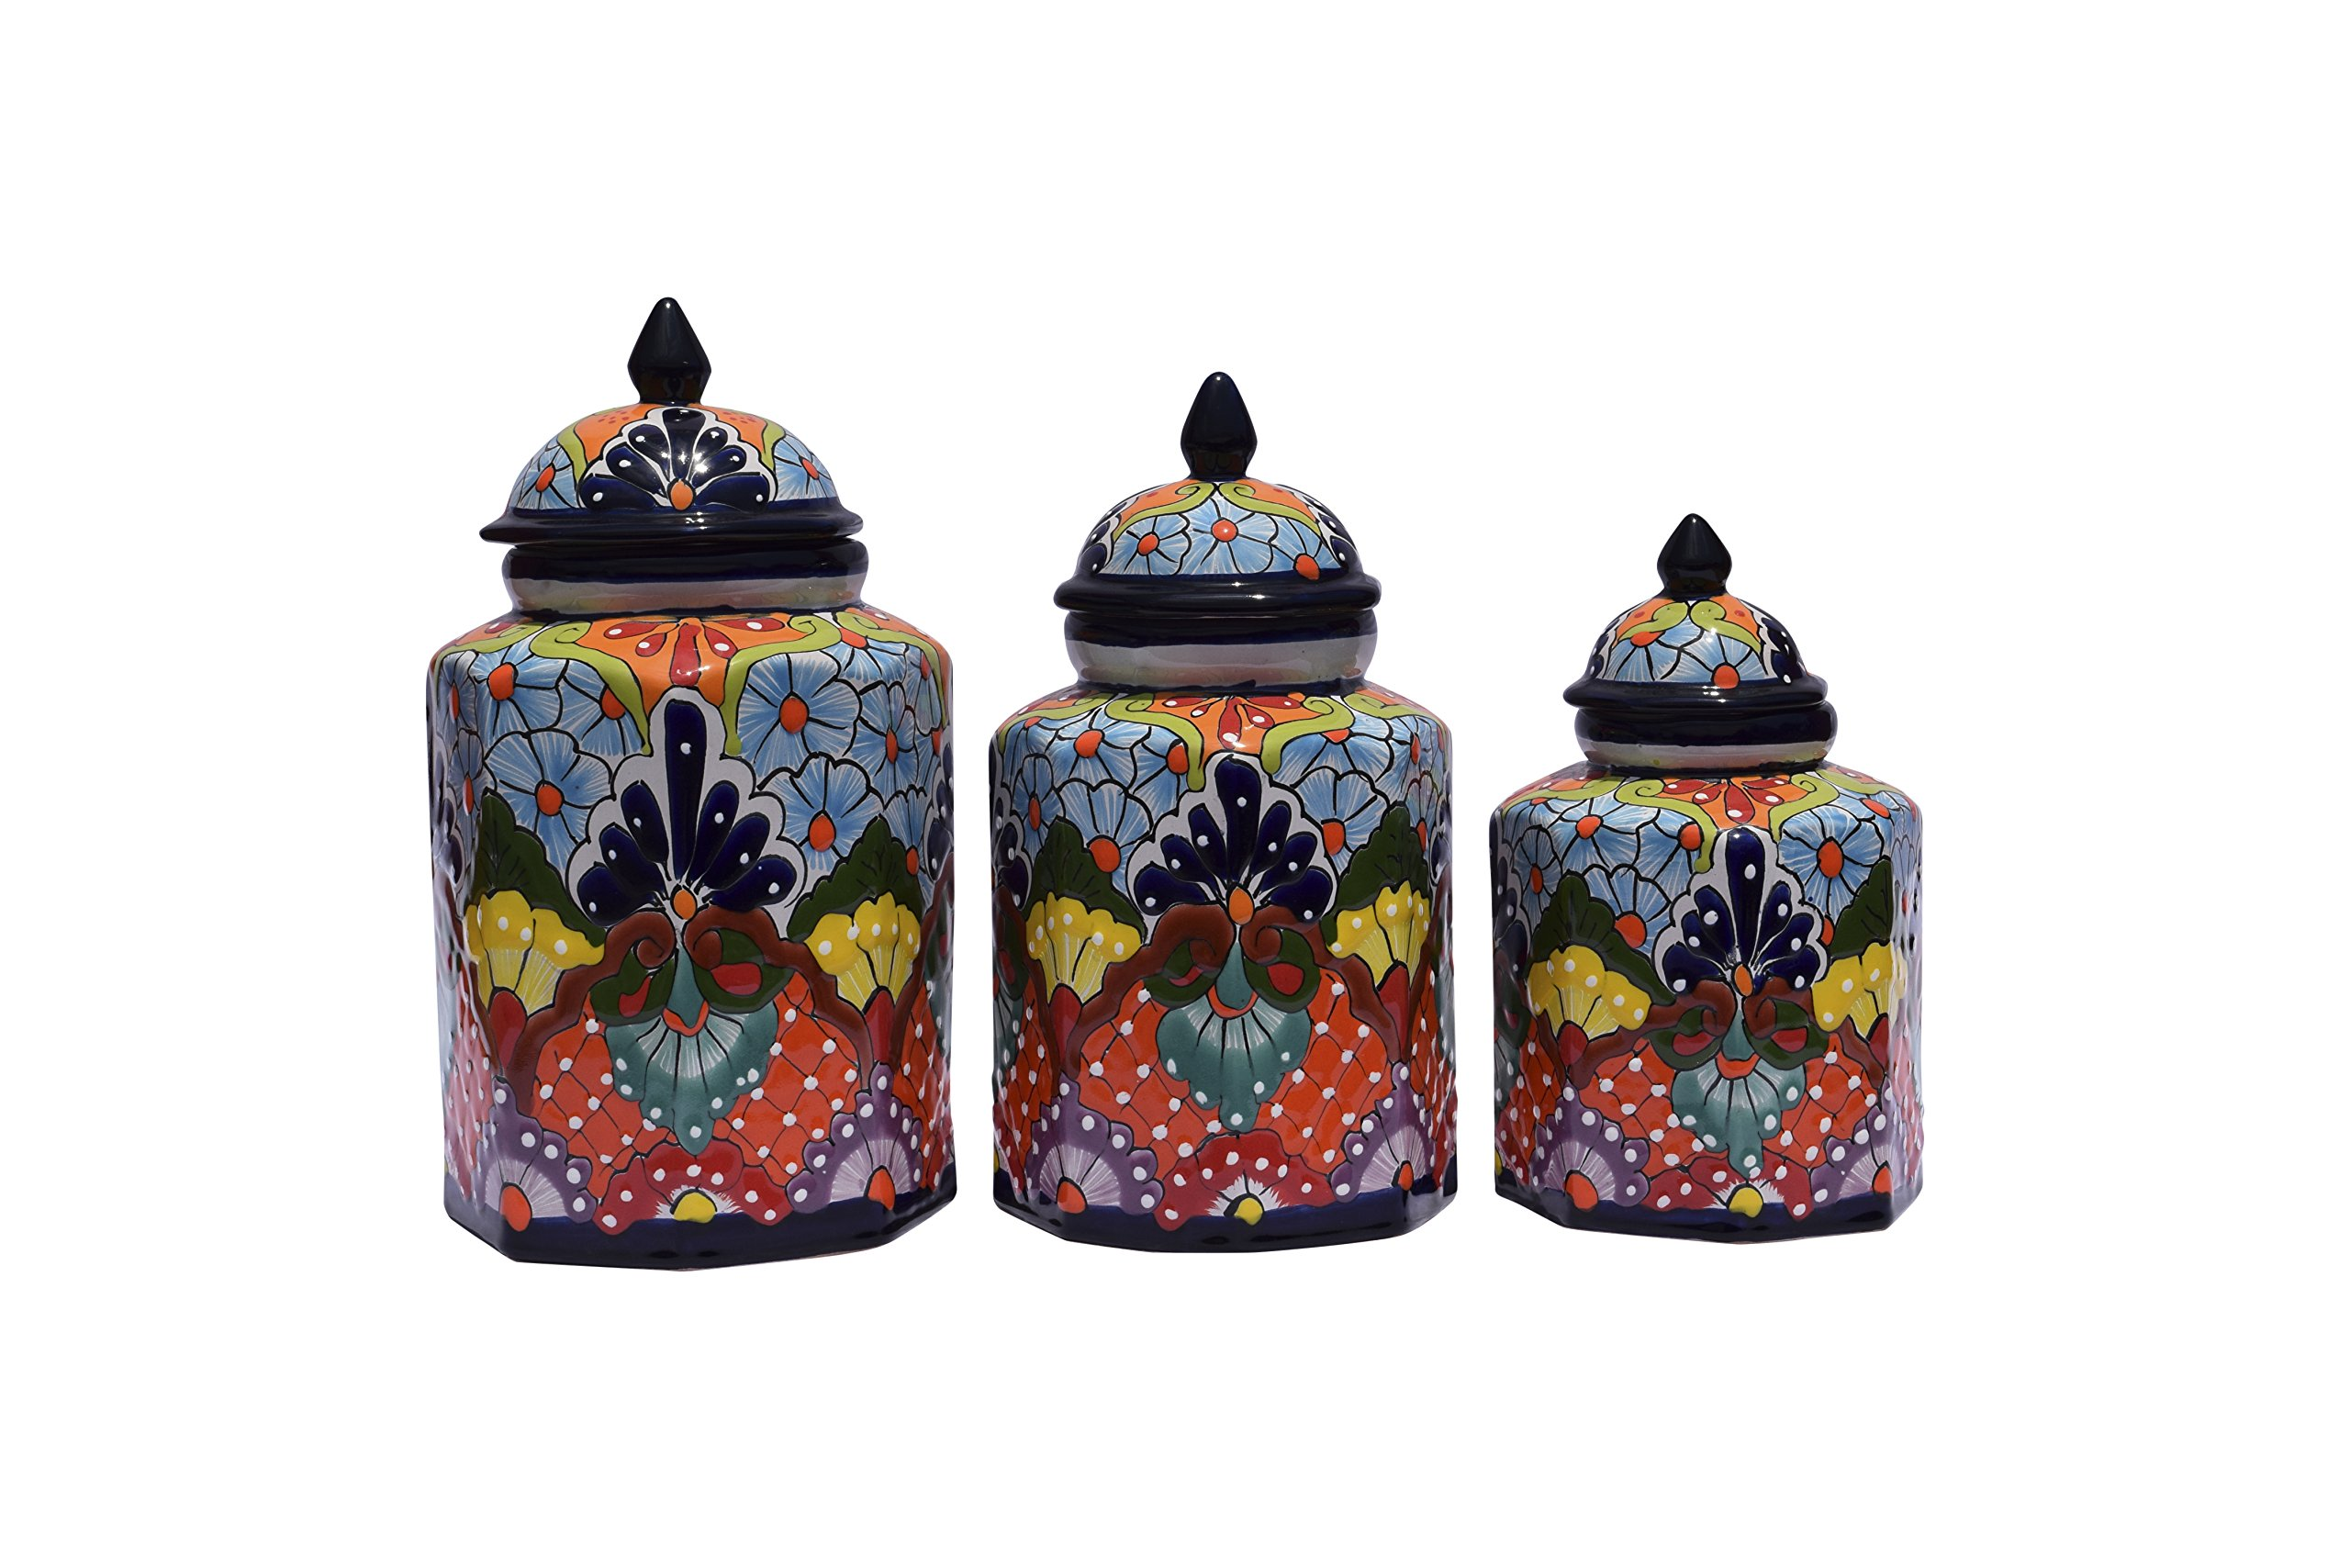 Ceramic Talavera Jar 3 Set Collection Decorative Home Kitchen Patio Garden Pottery Canisters